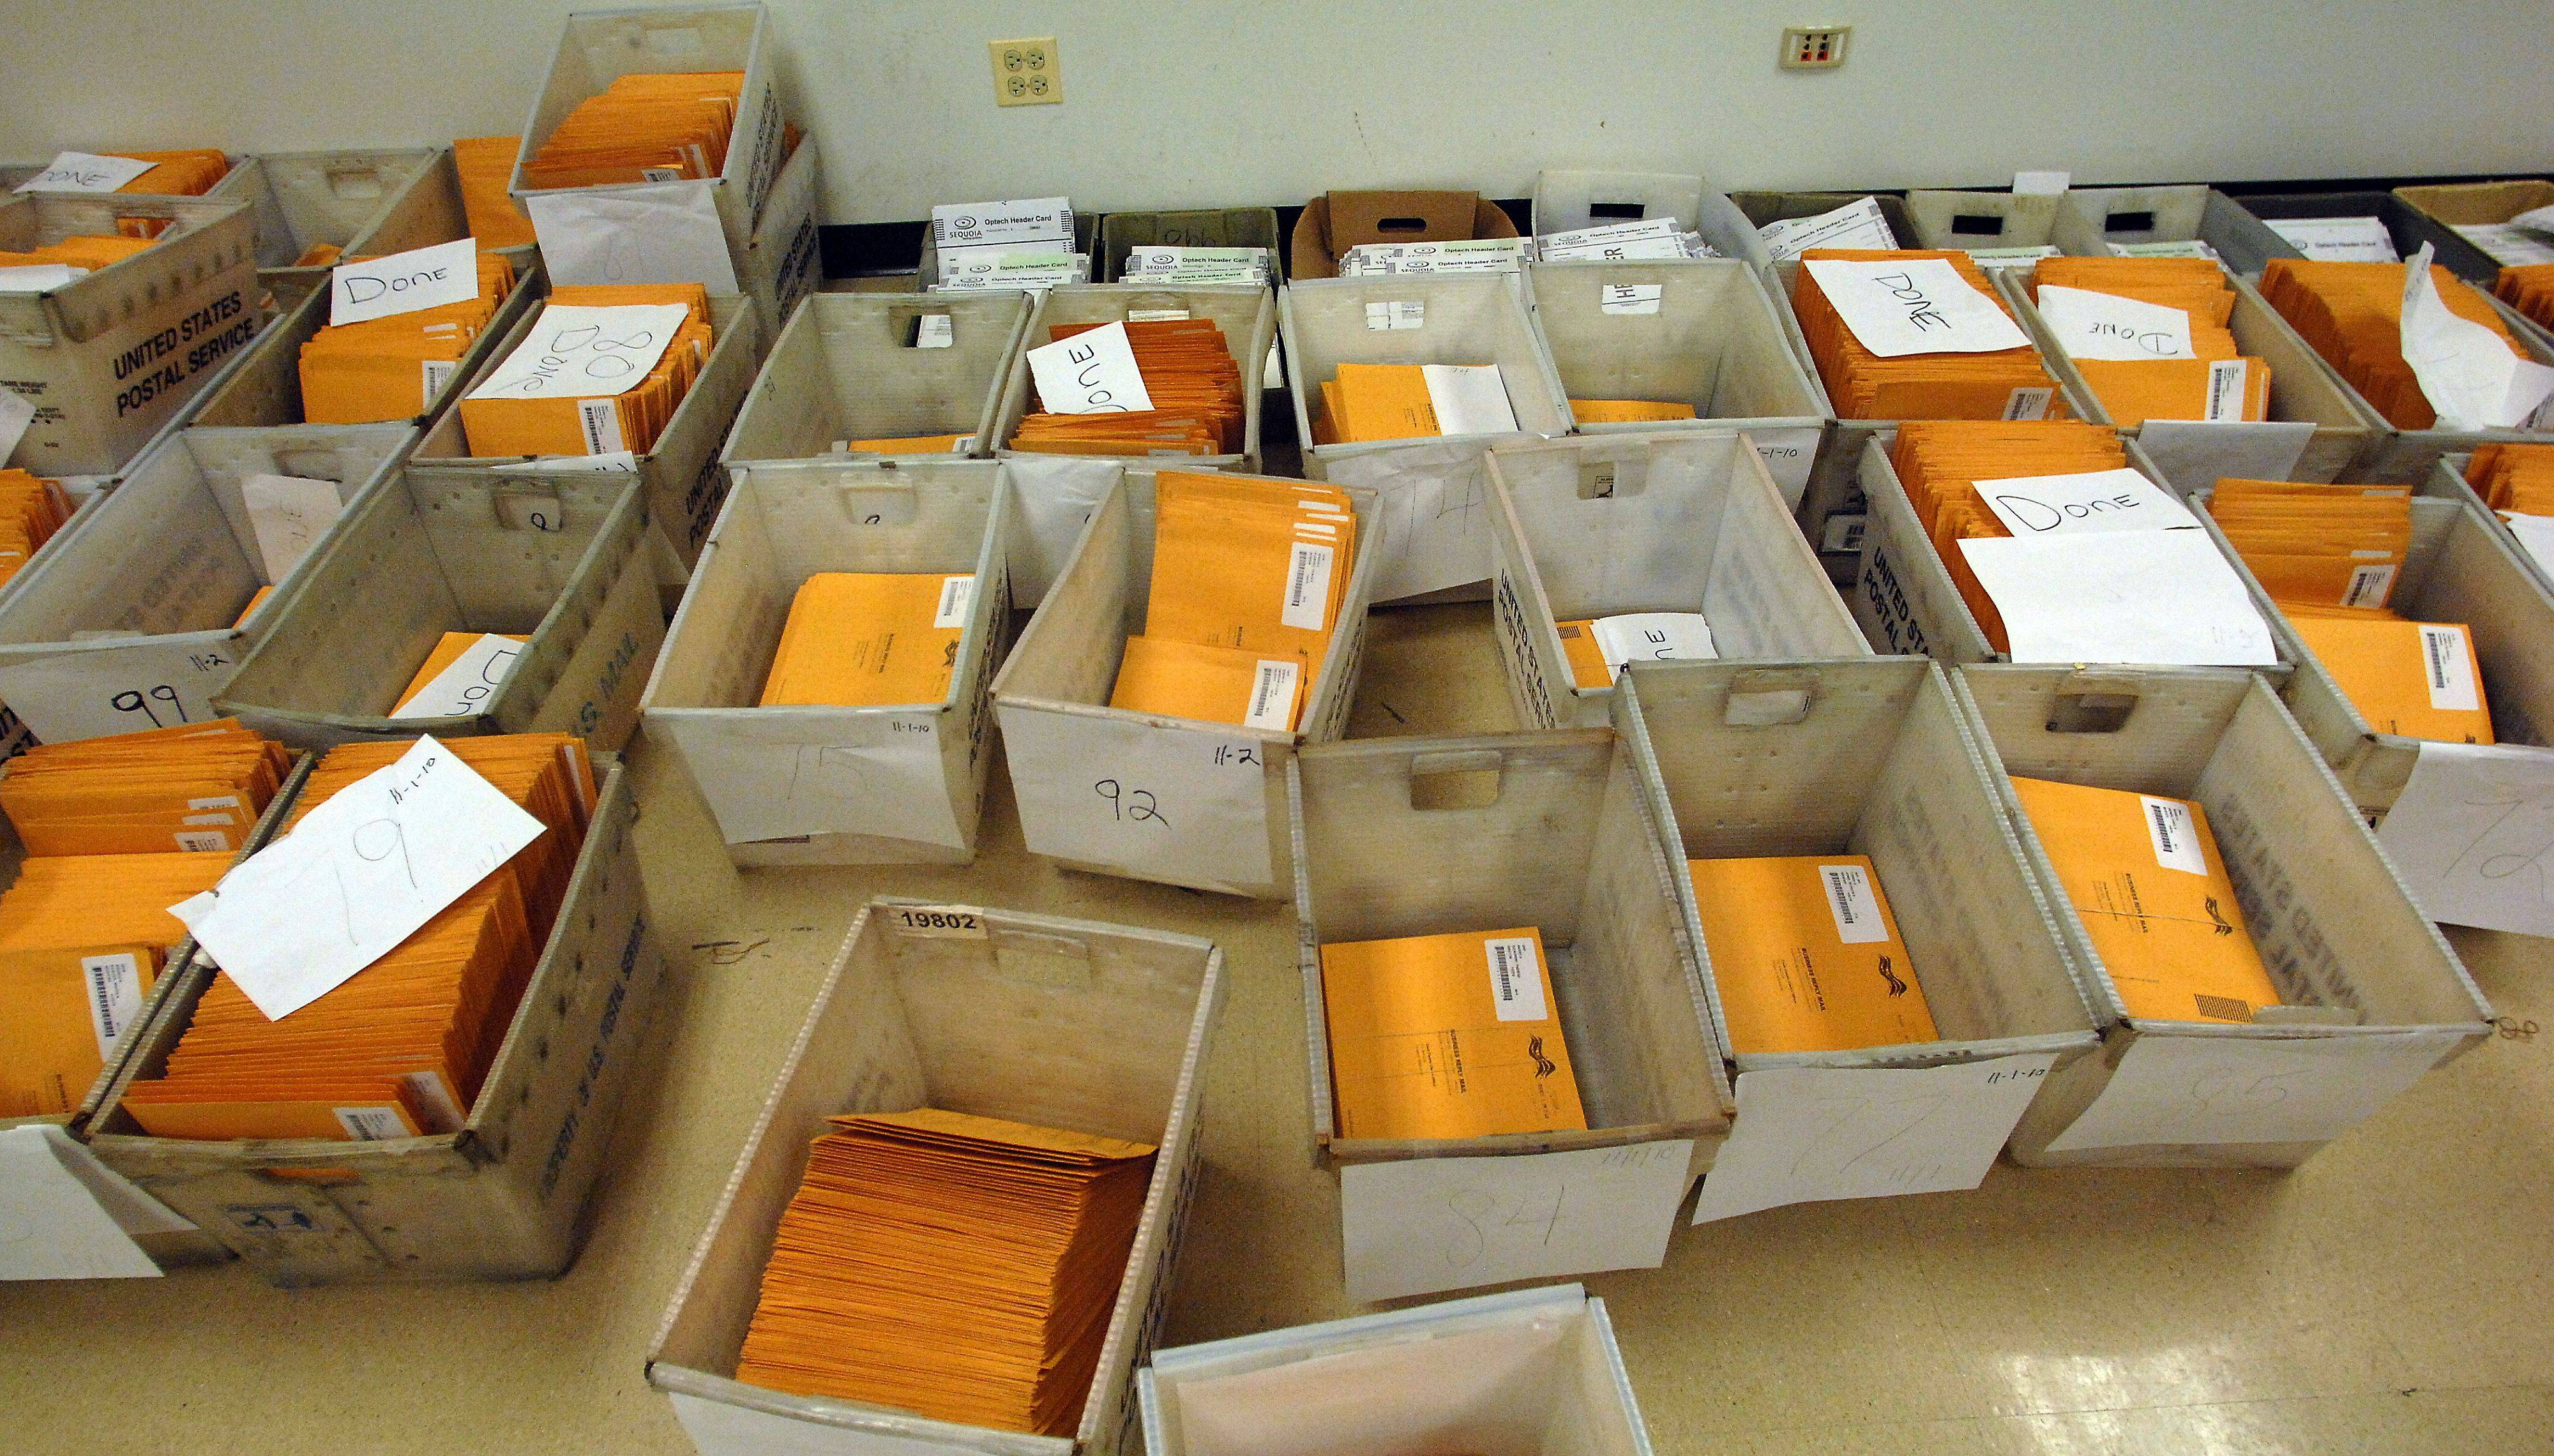 Boxes of absentee ballots lie on the floor as the counting continued Thursday in the 8th Congressional District race.